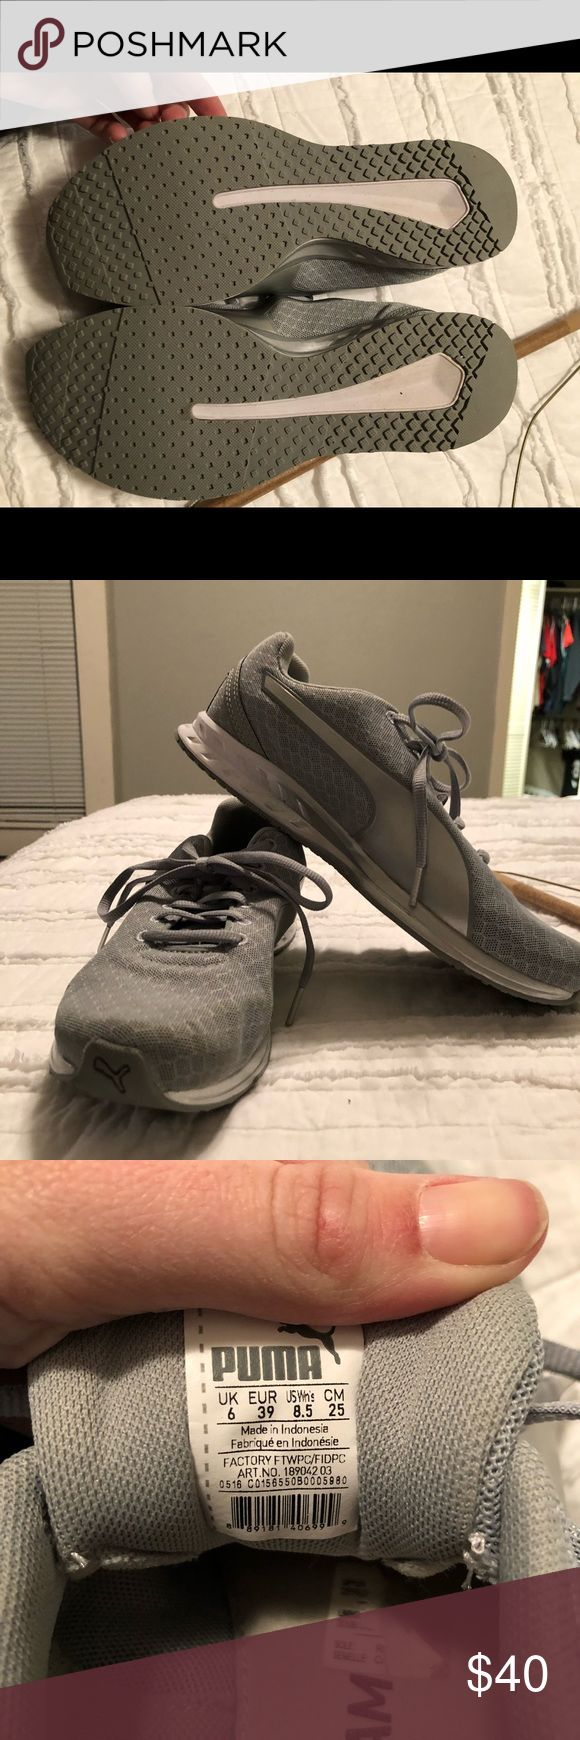 Puma Running Shoes Worn once!! Extremely comfortable, just bought something else nothing wrong with them. Puma Shoes Athletic Shoes